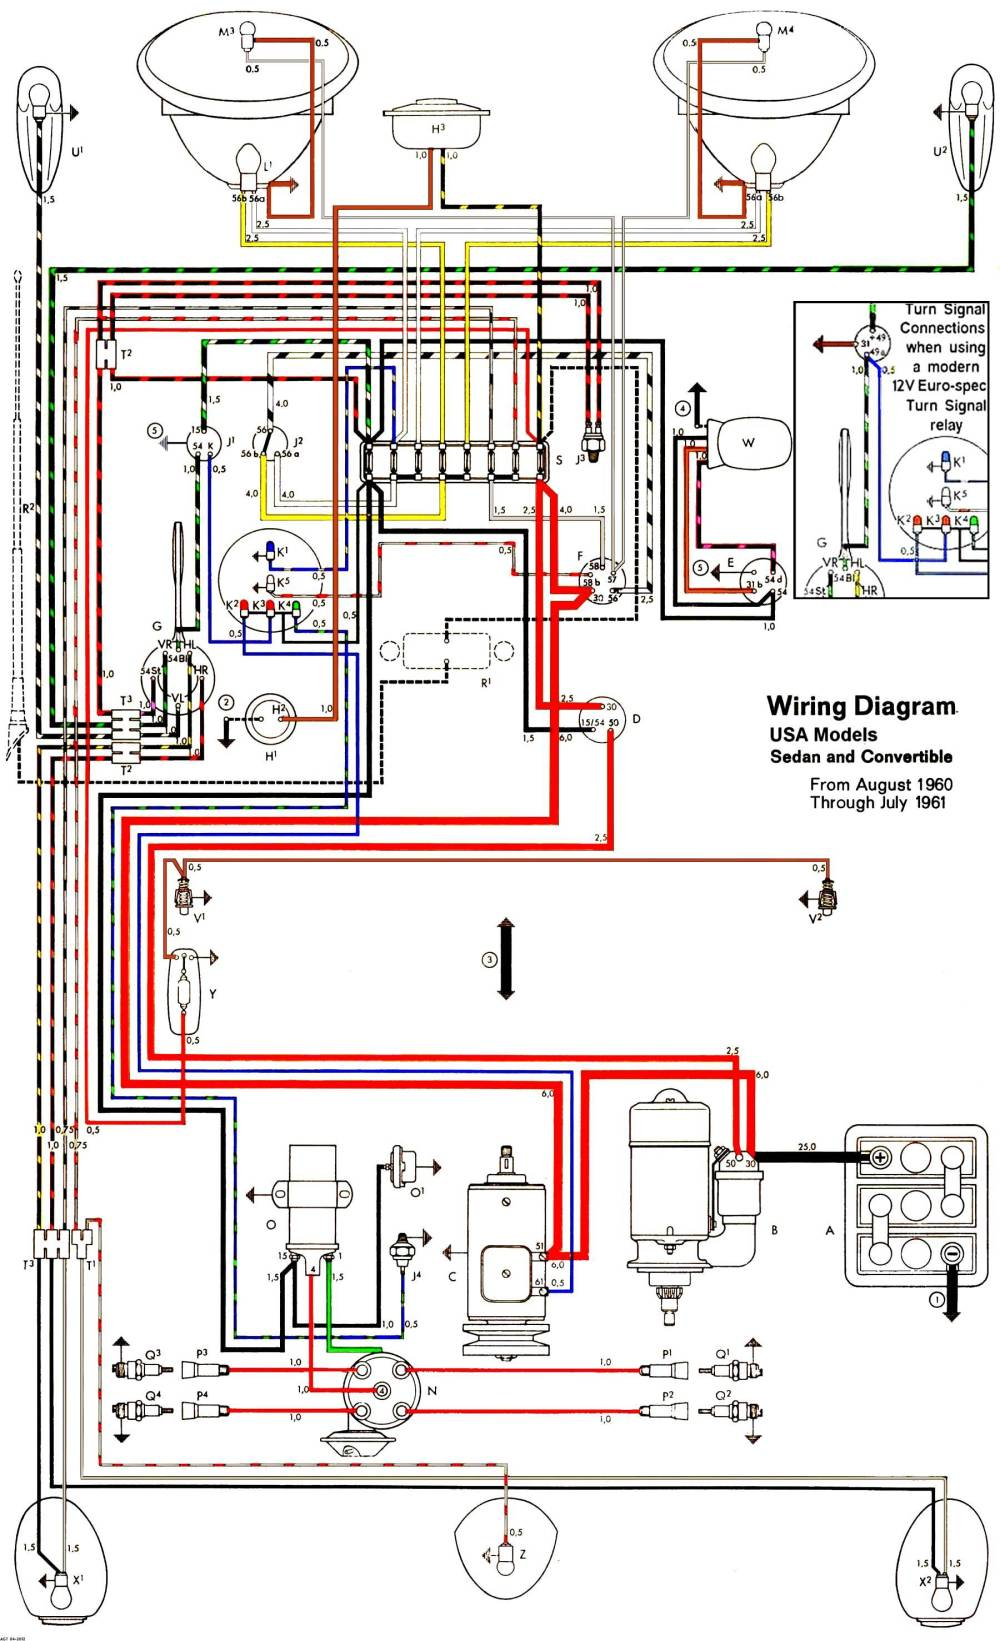 medium resolution of wrg 0626 75 k 5 wiring diagram75 k 5 wiring diagram